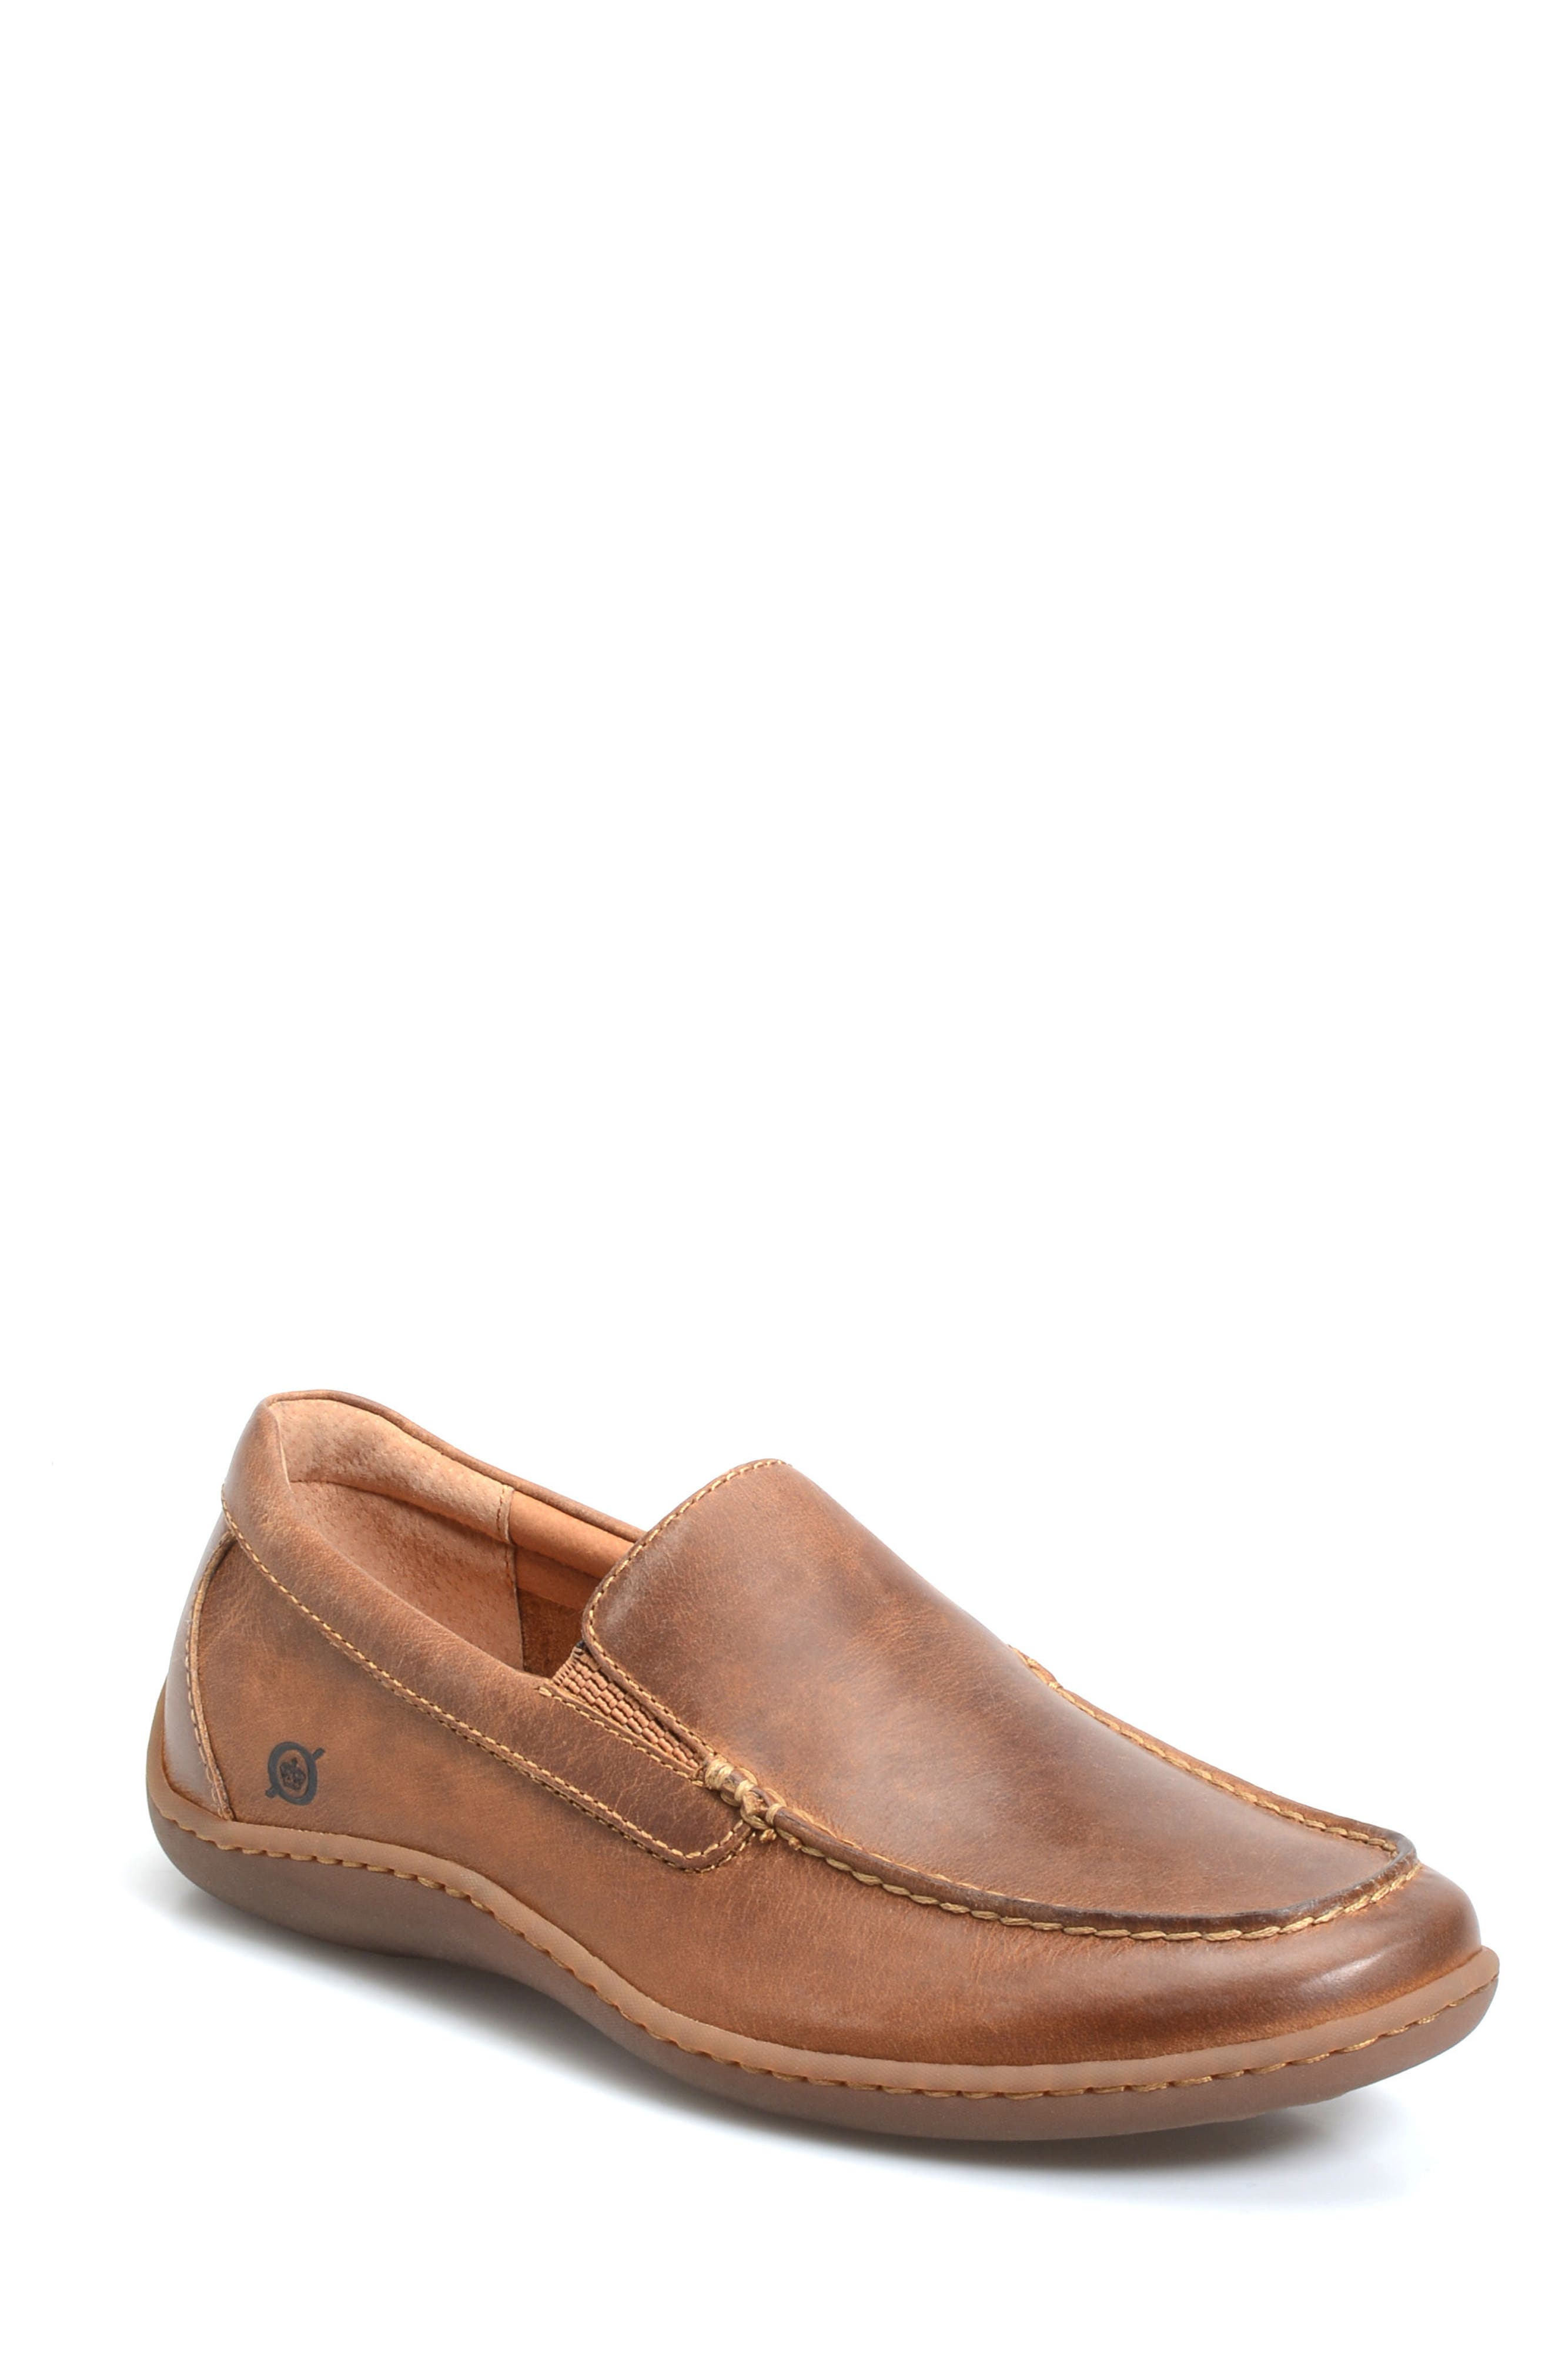 Brompton Loafer,                         Main,                         color, NATURAL